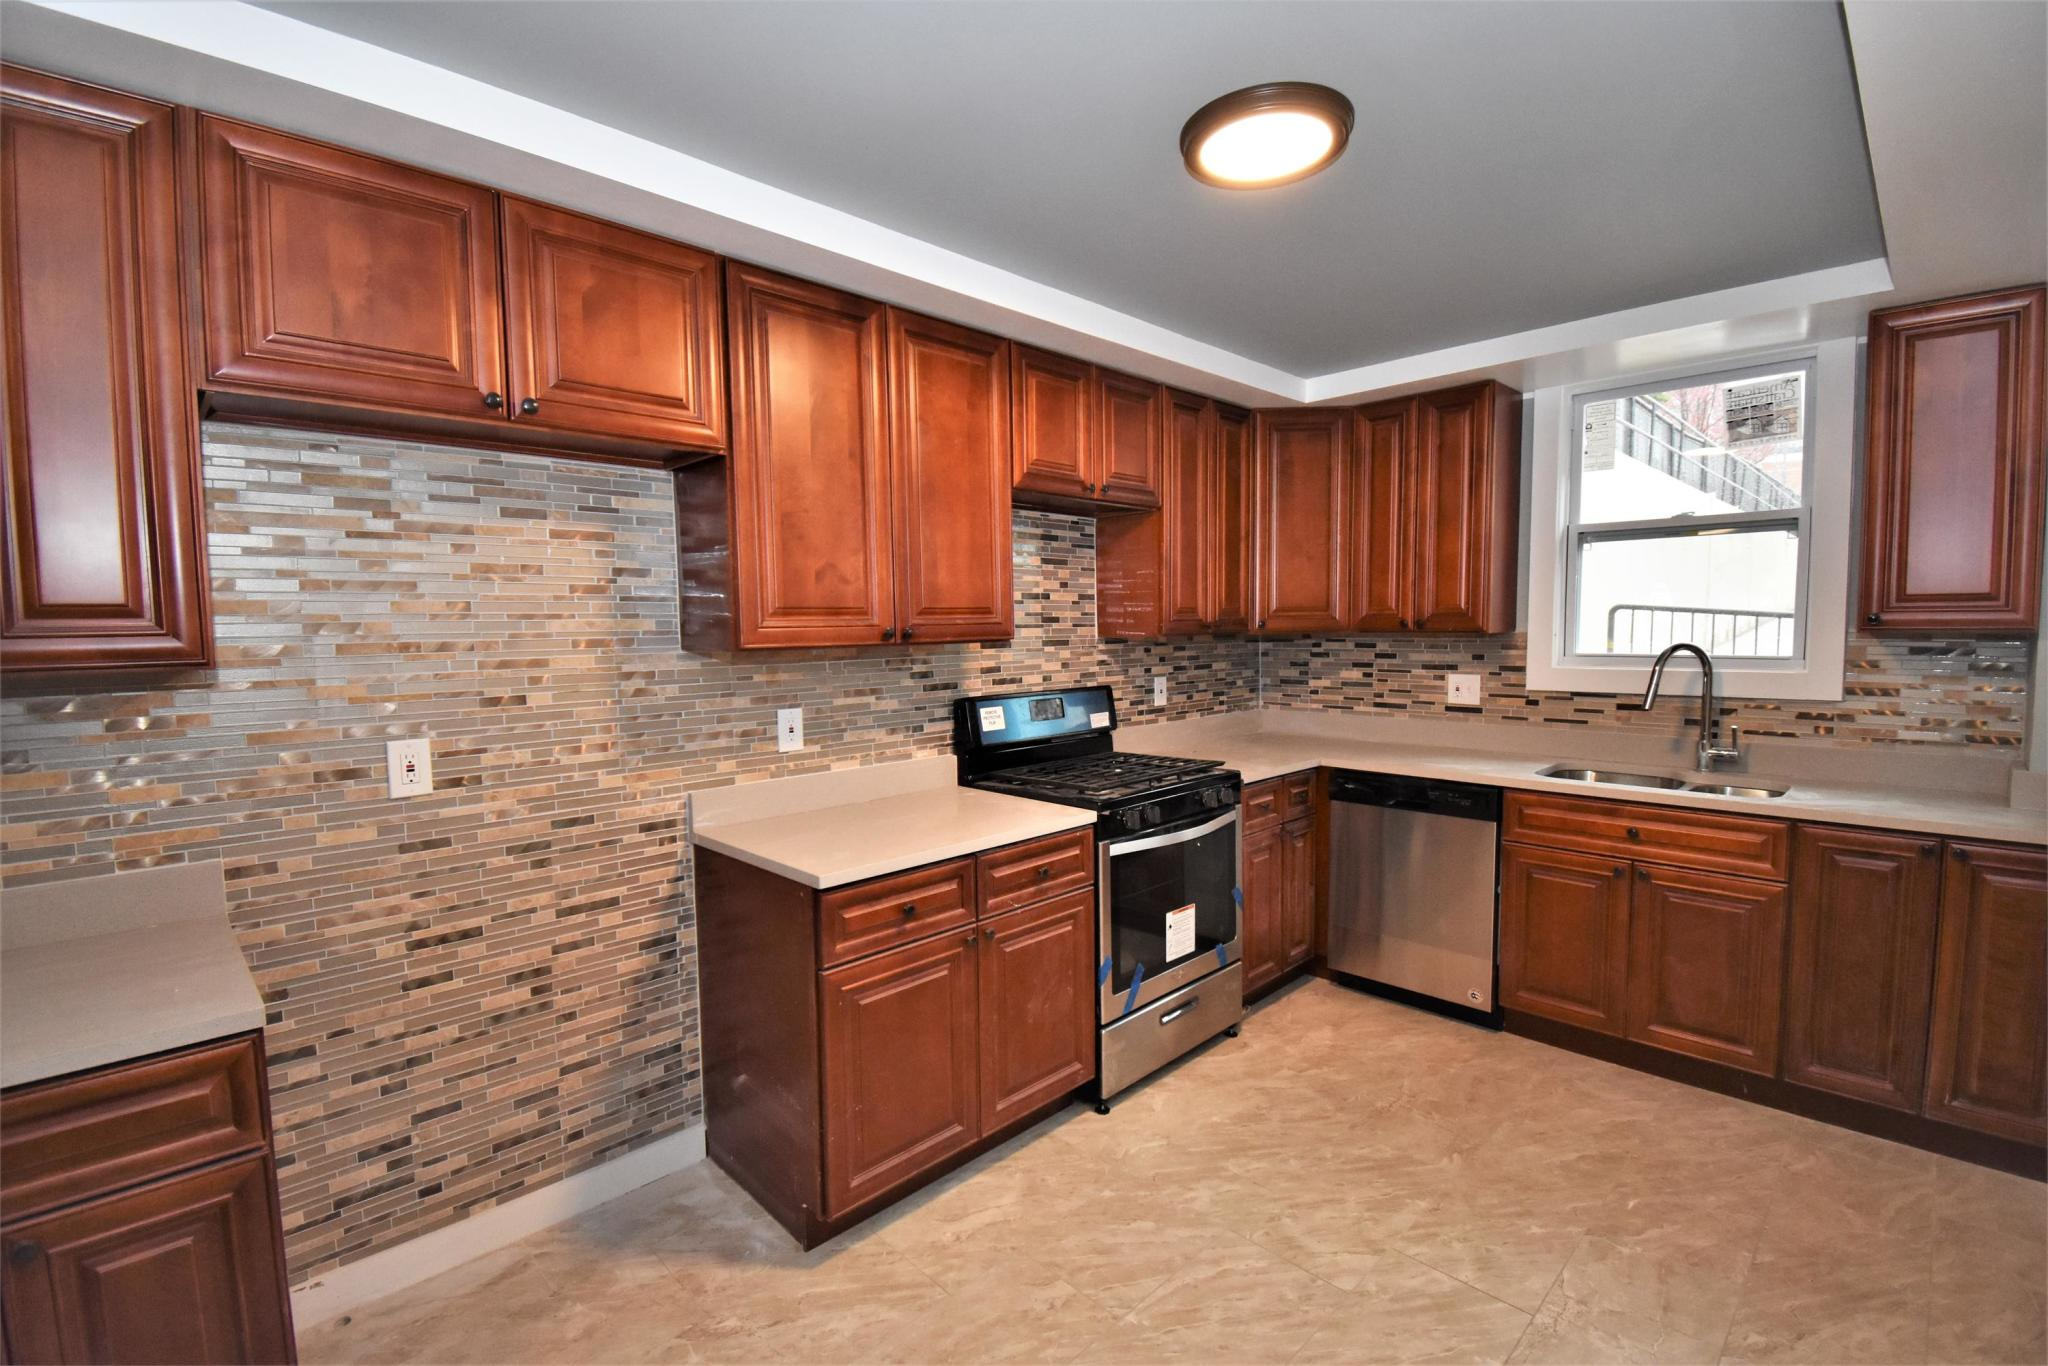 210 Chesterfield Rd, Pittsburgh, PA 15213 For Rent   Trulia